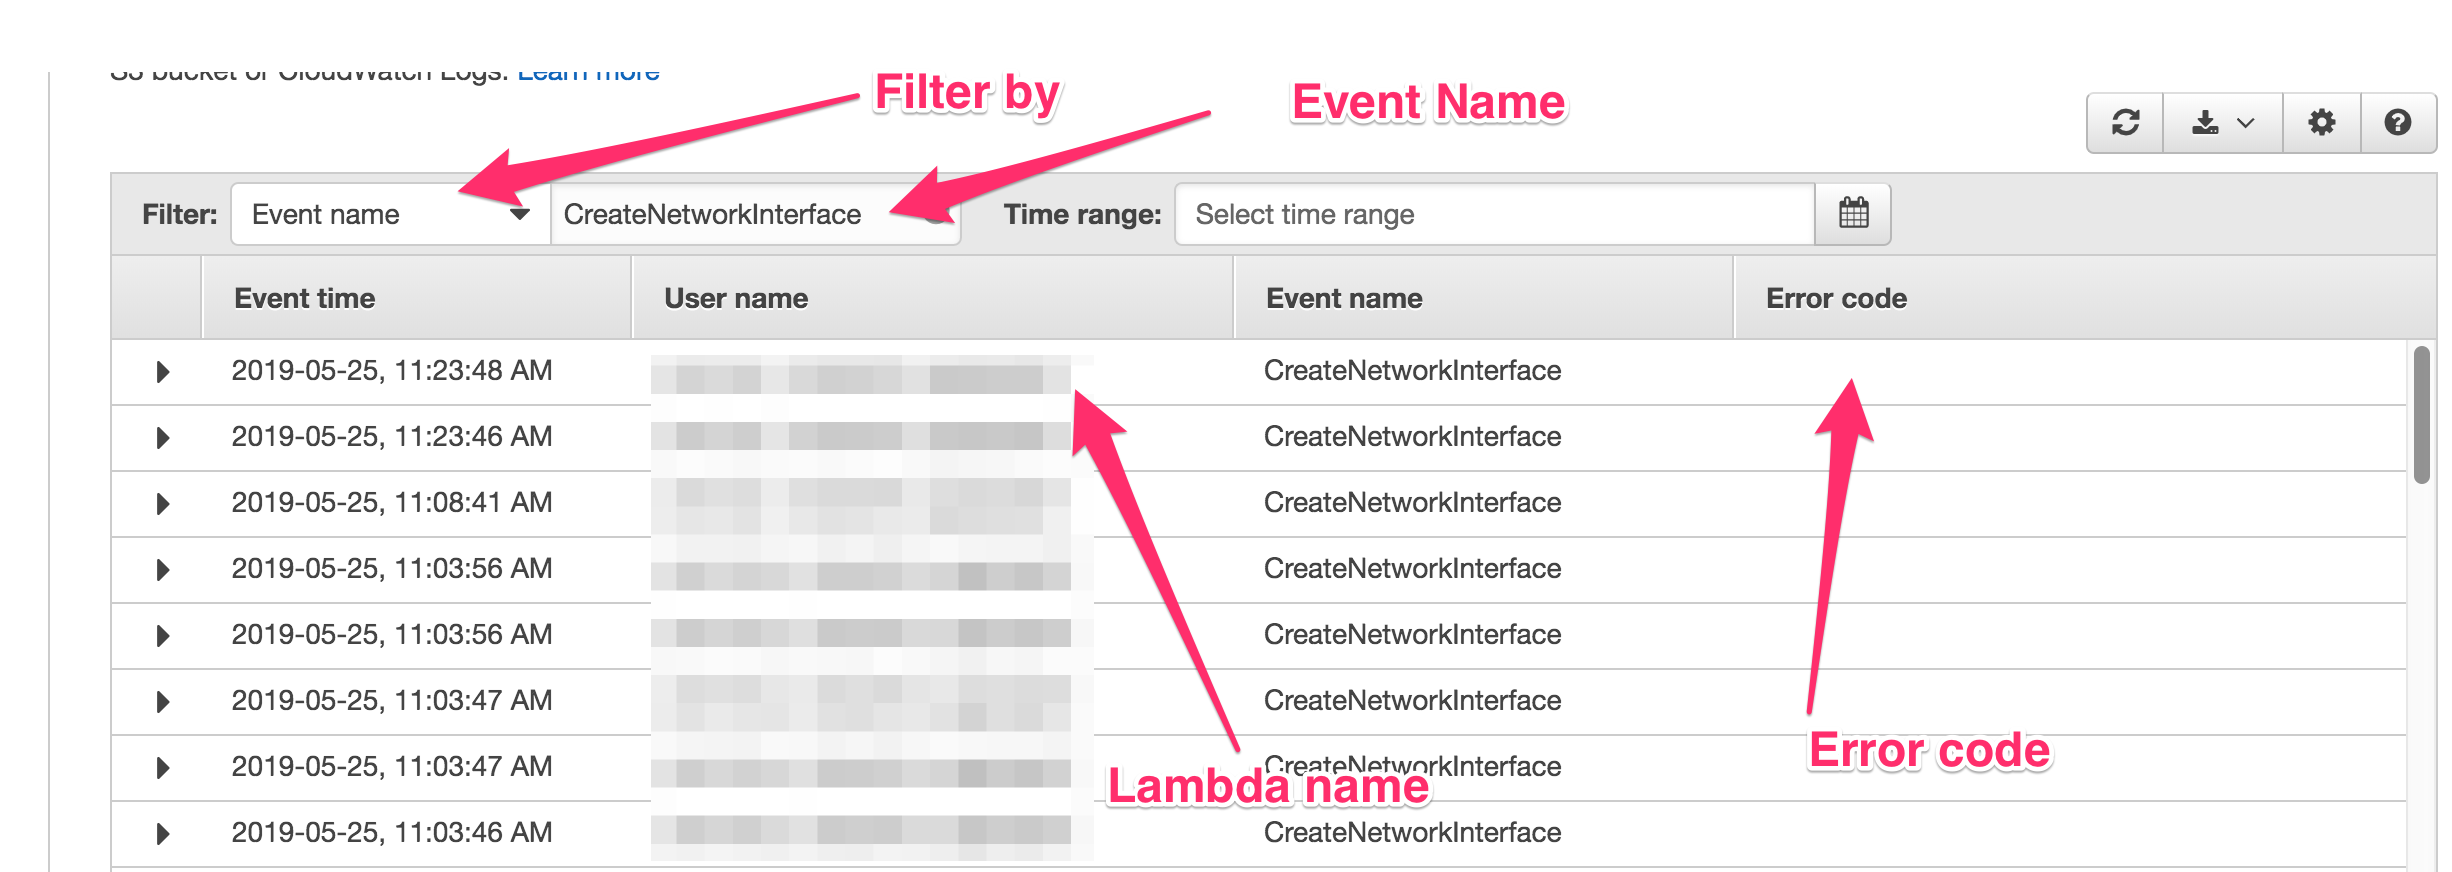 CloudTrail event name filter